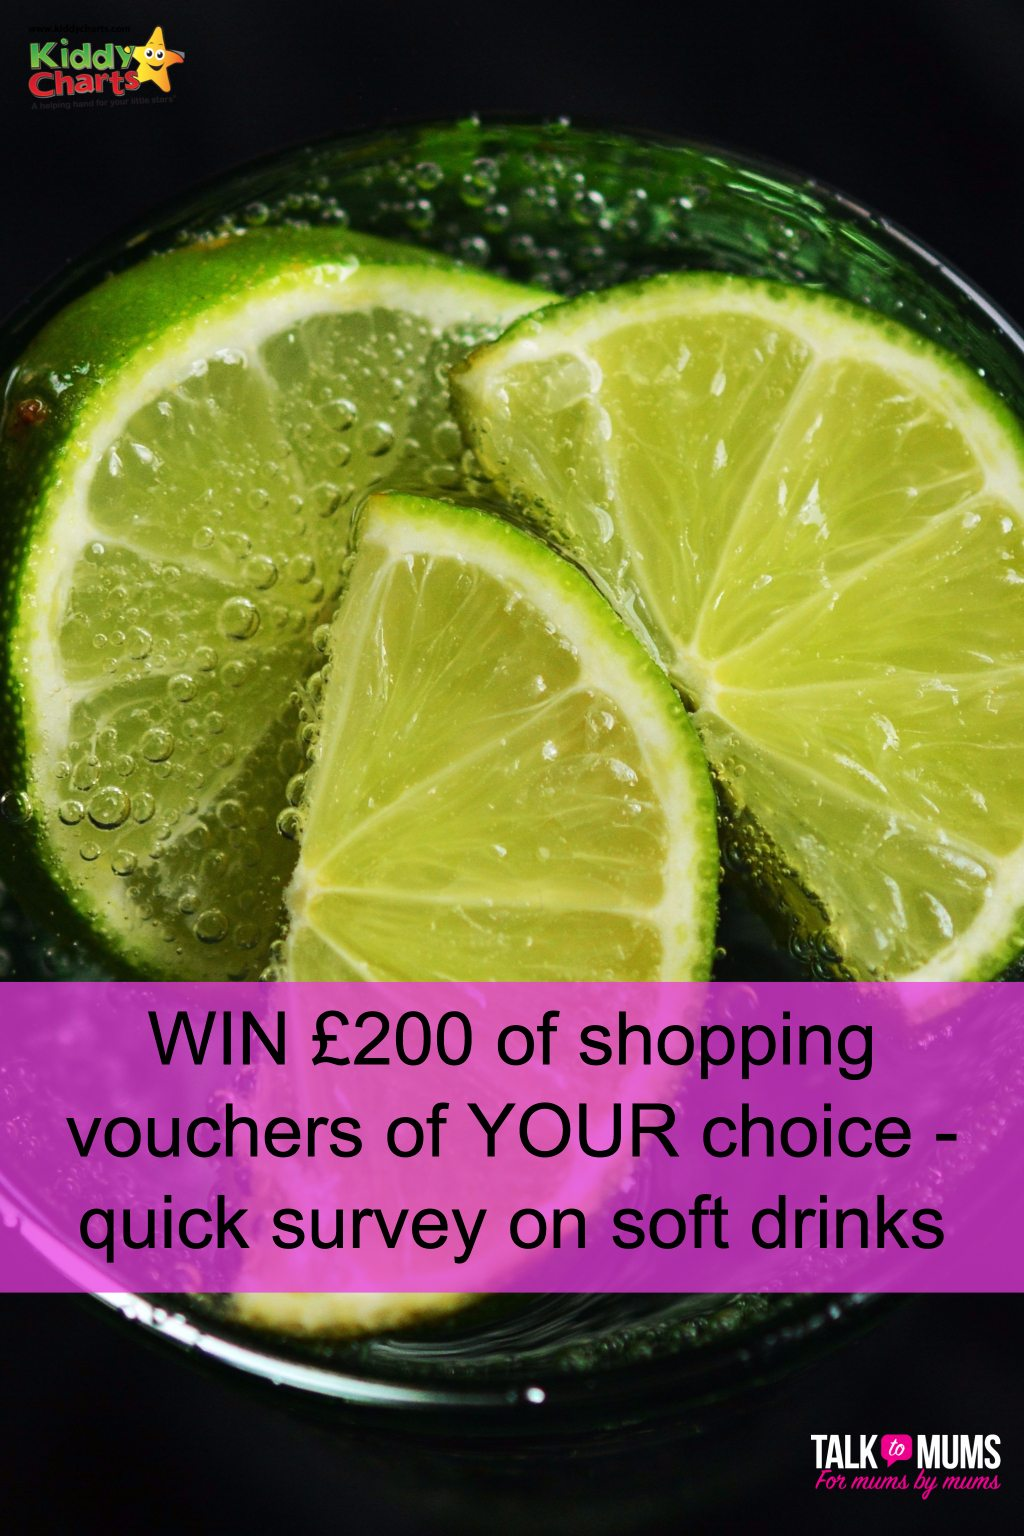 Talk to Mums Survey on Soft Drinks - £200 shopping vouchers up for grabs!